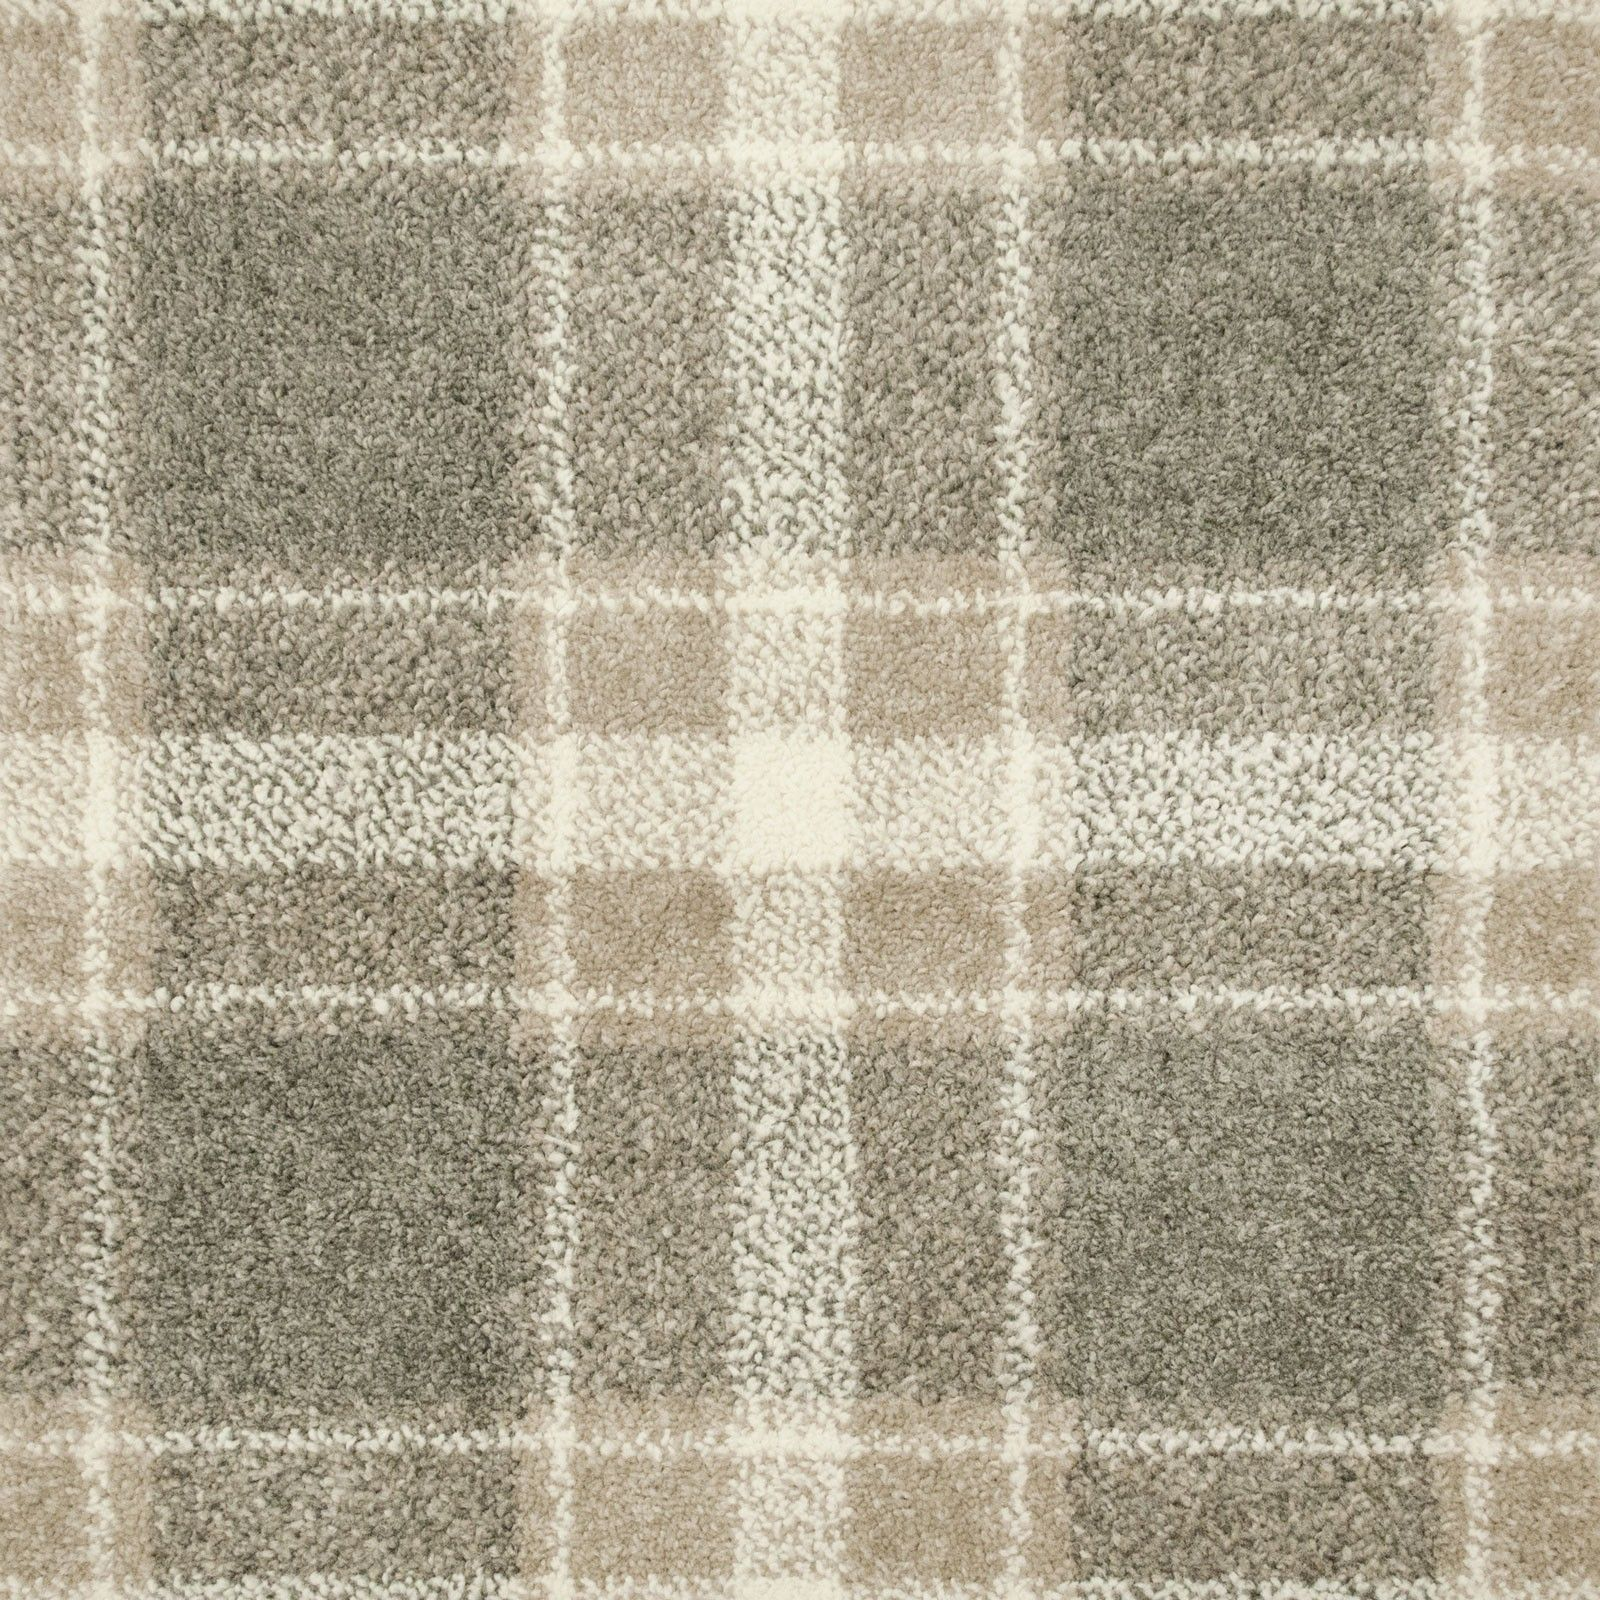 grey & beige tartan castle wilton carpet | house | pinterest